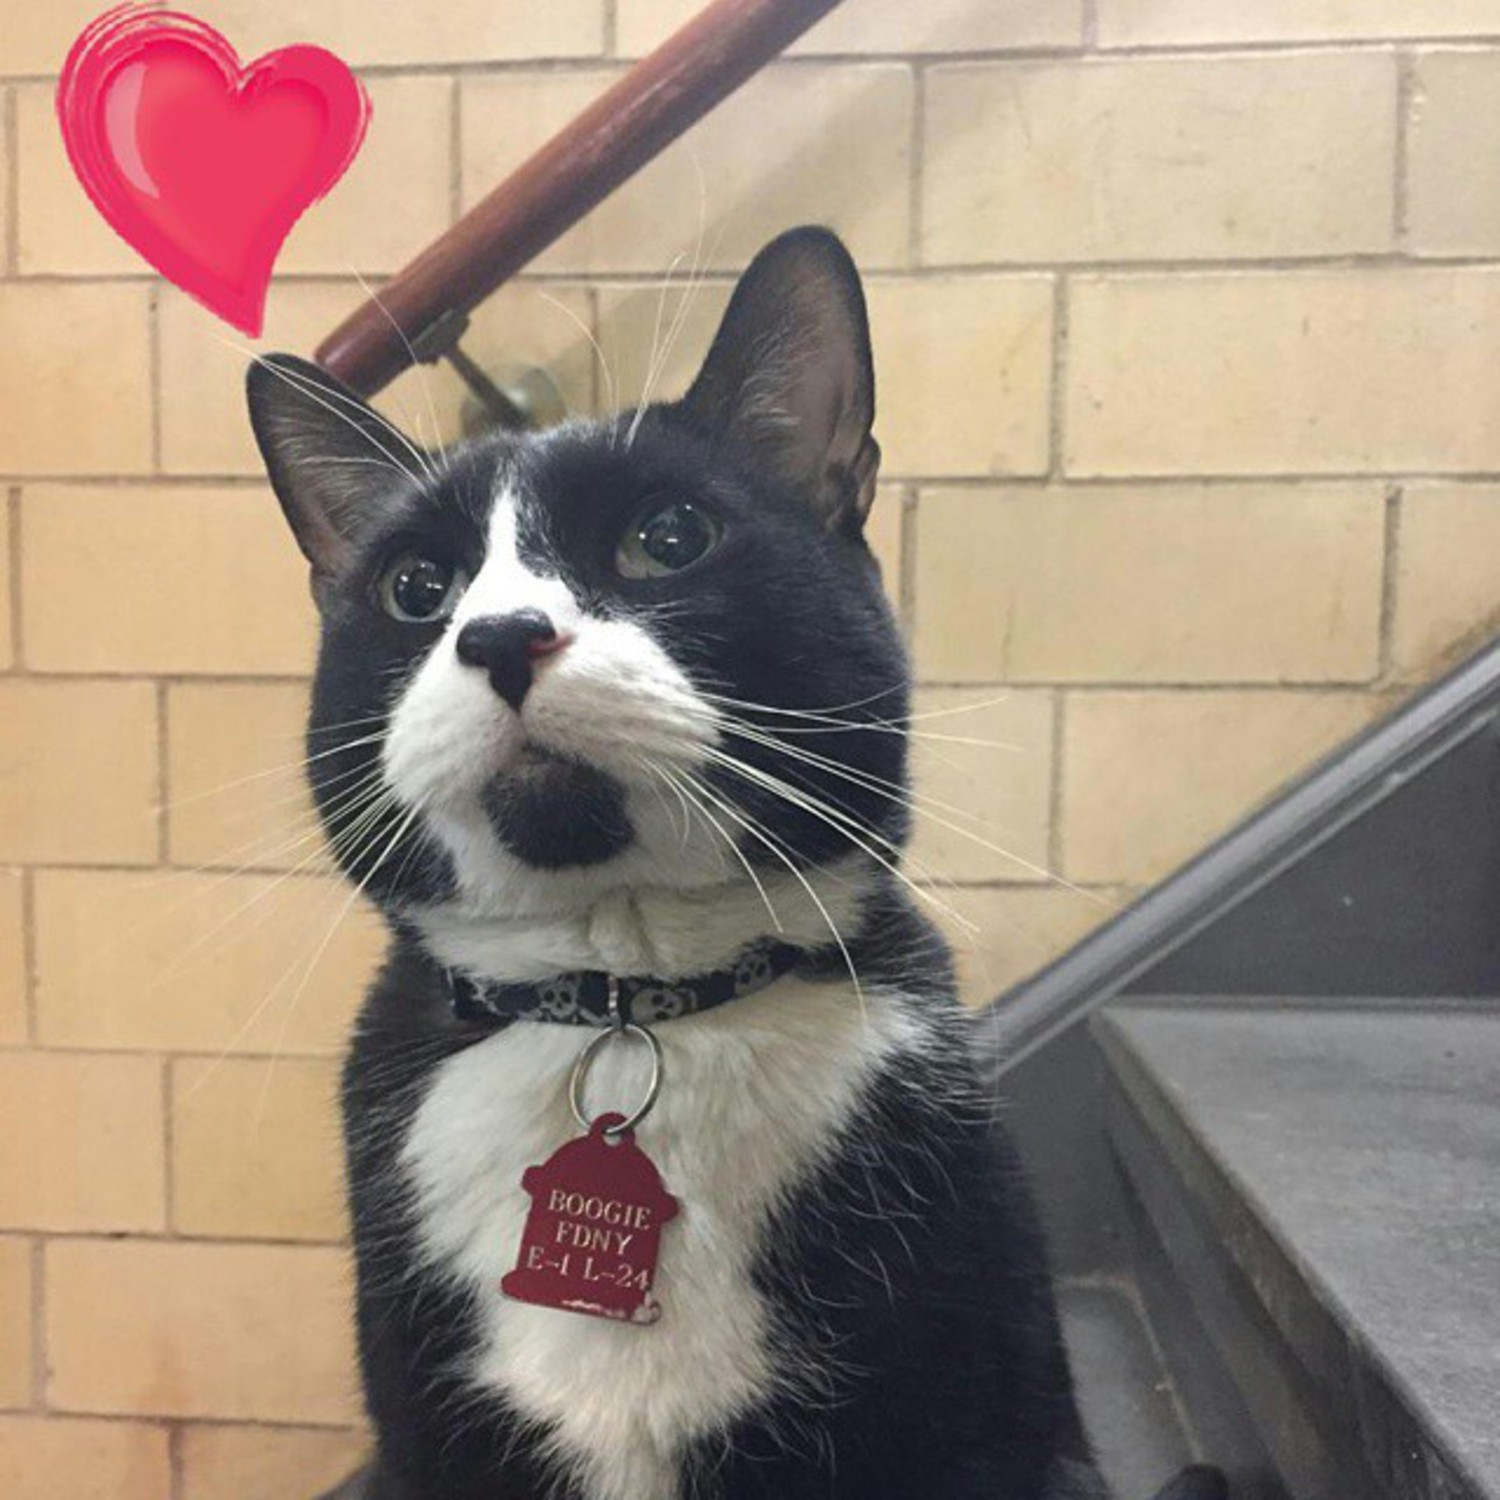 Thinkin about my boo. Happy Meowintines day 😘😍 ♥ #valentinesday #showsomelove #meowintinesday